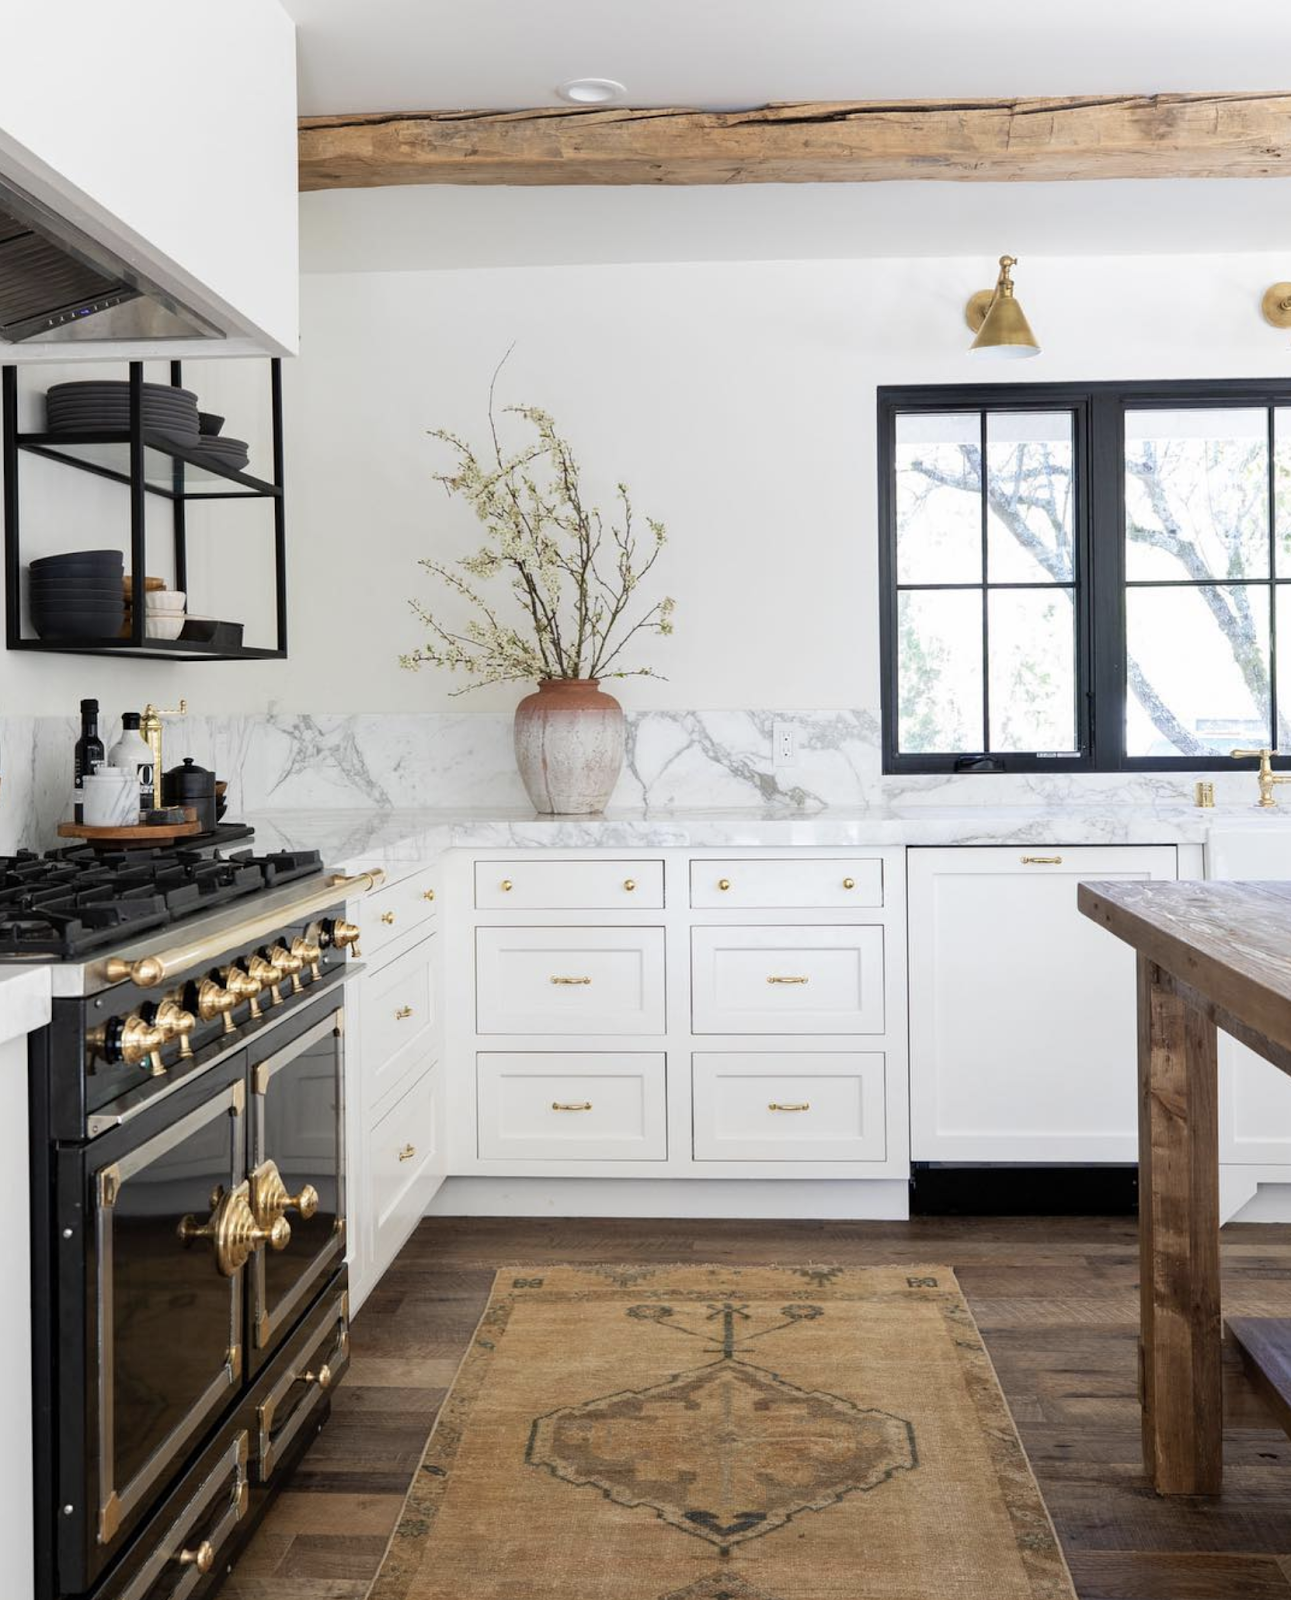 a unique white kitchen with black stove and white shaker cabinets. a wood beam spans the ceiling, matching a reclaimed wood center island. a marble countertop and backsplash ties in the color scheme of the space